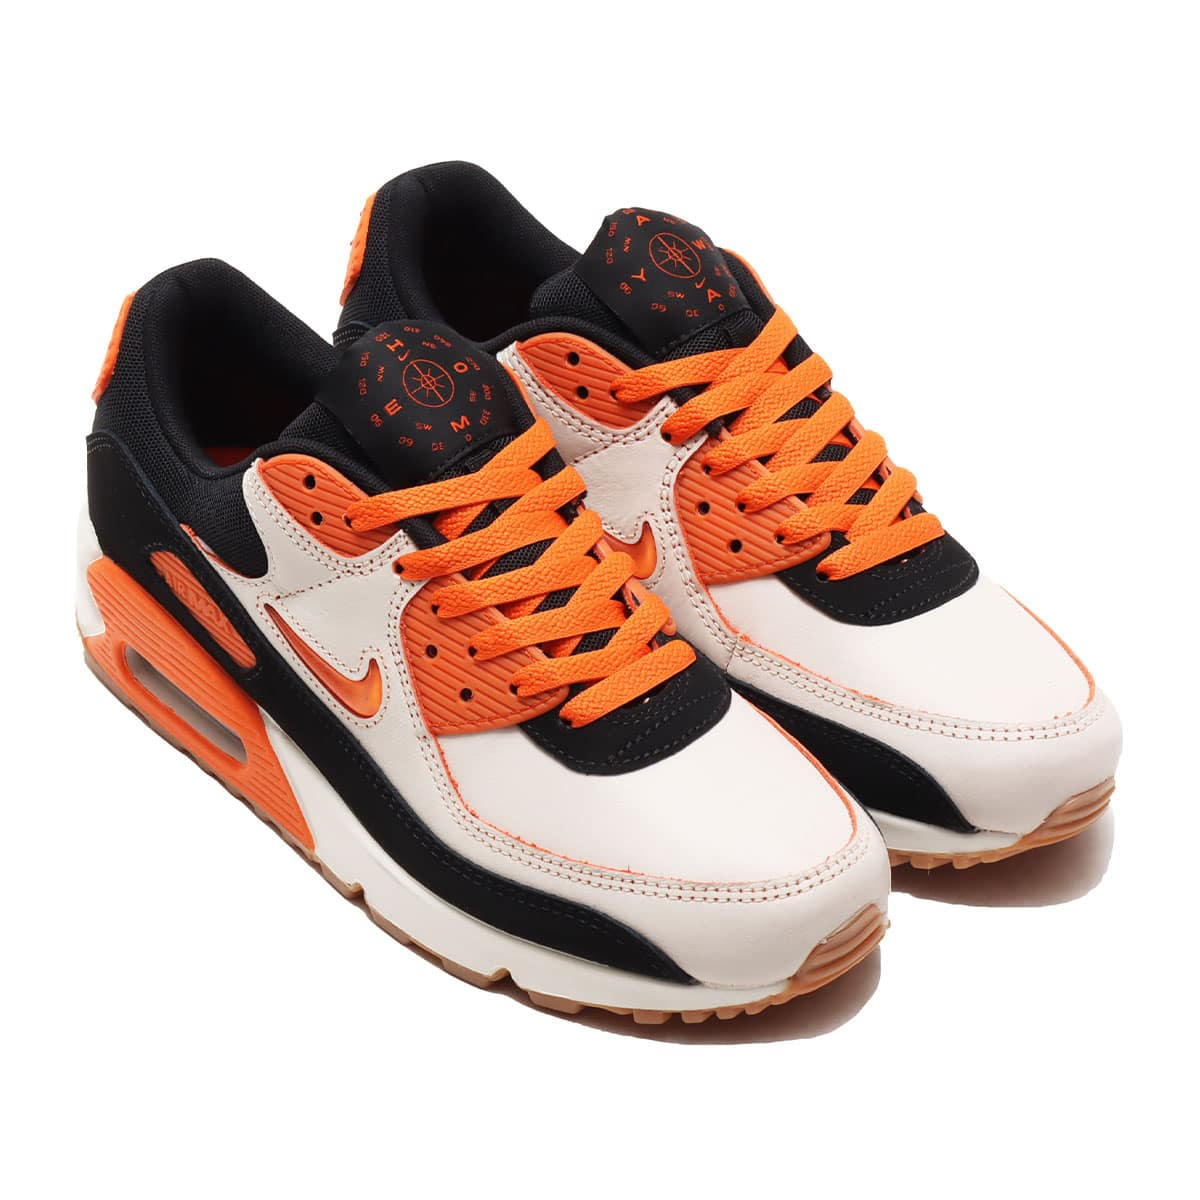 NIKE AIR MAX 90 PRM SAIL/SAFETY ORANGE-BLACK-GUM MED BROWN 20SU-S_photo_large